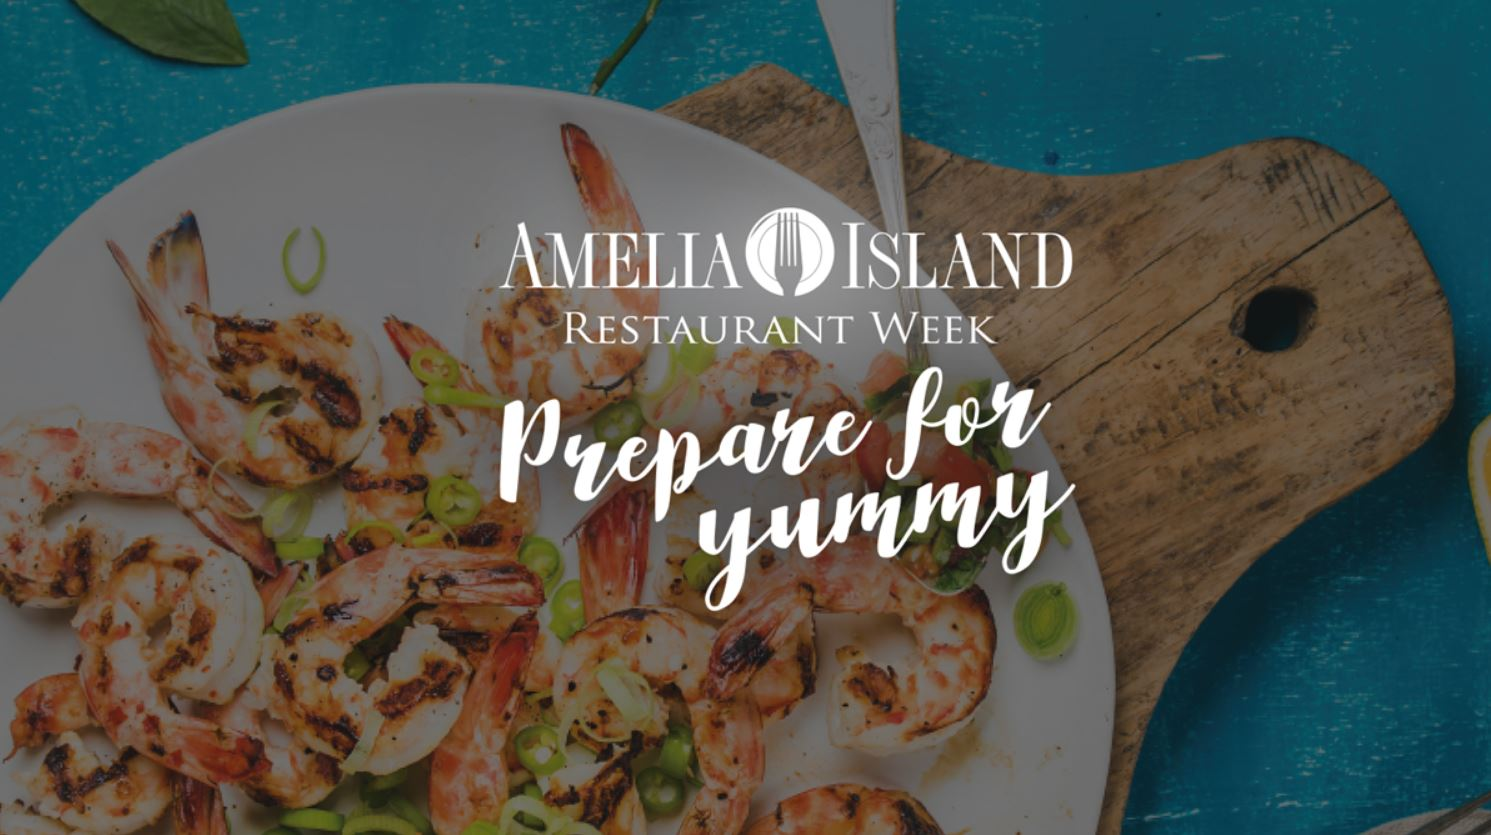 La Cucina South Amelia Island Restaurant Week January 18 27 2019 Amelia Surf Racquet Club